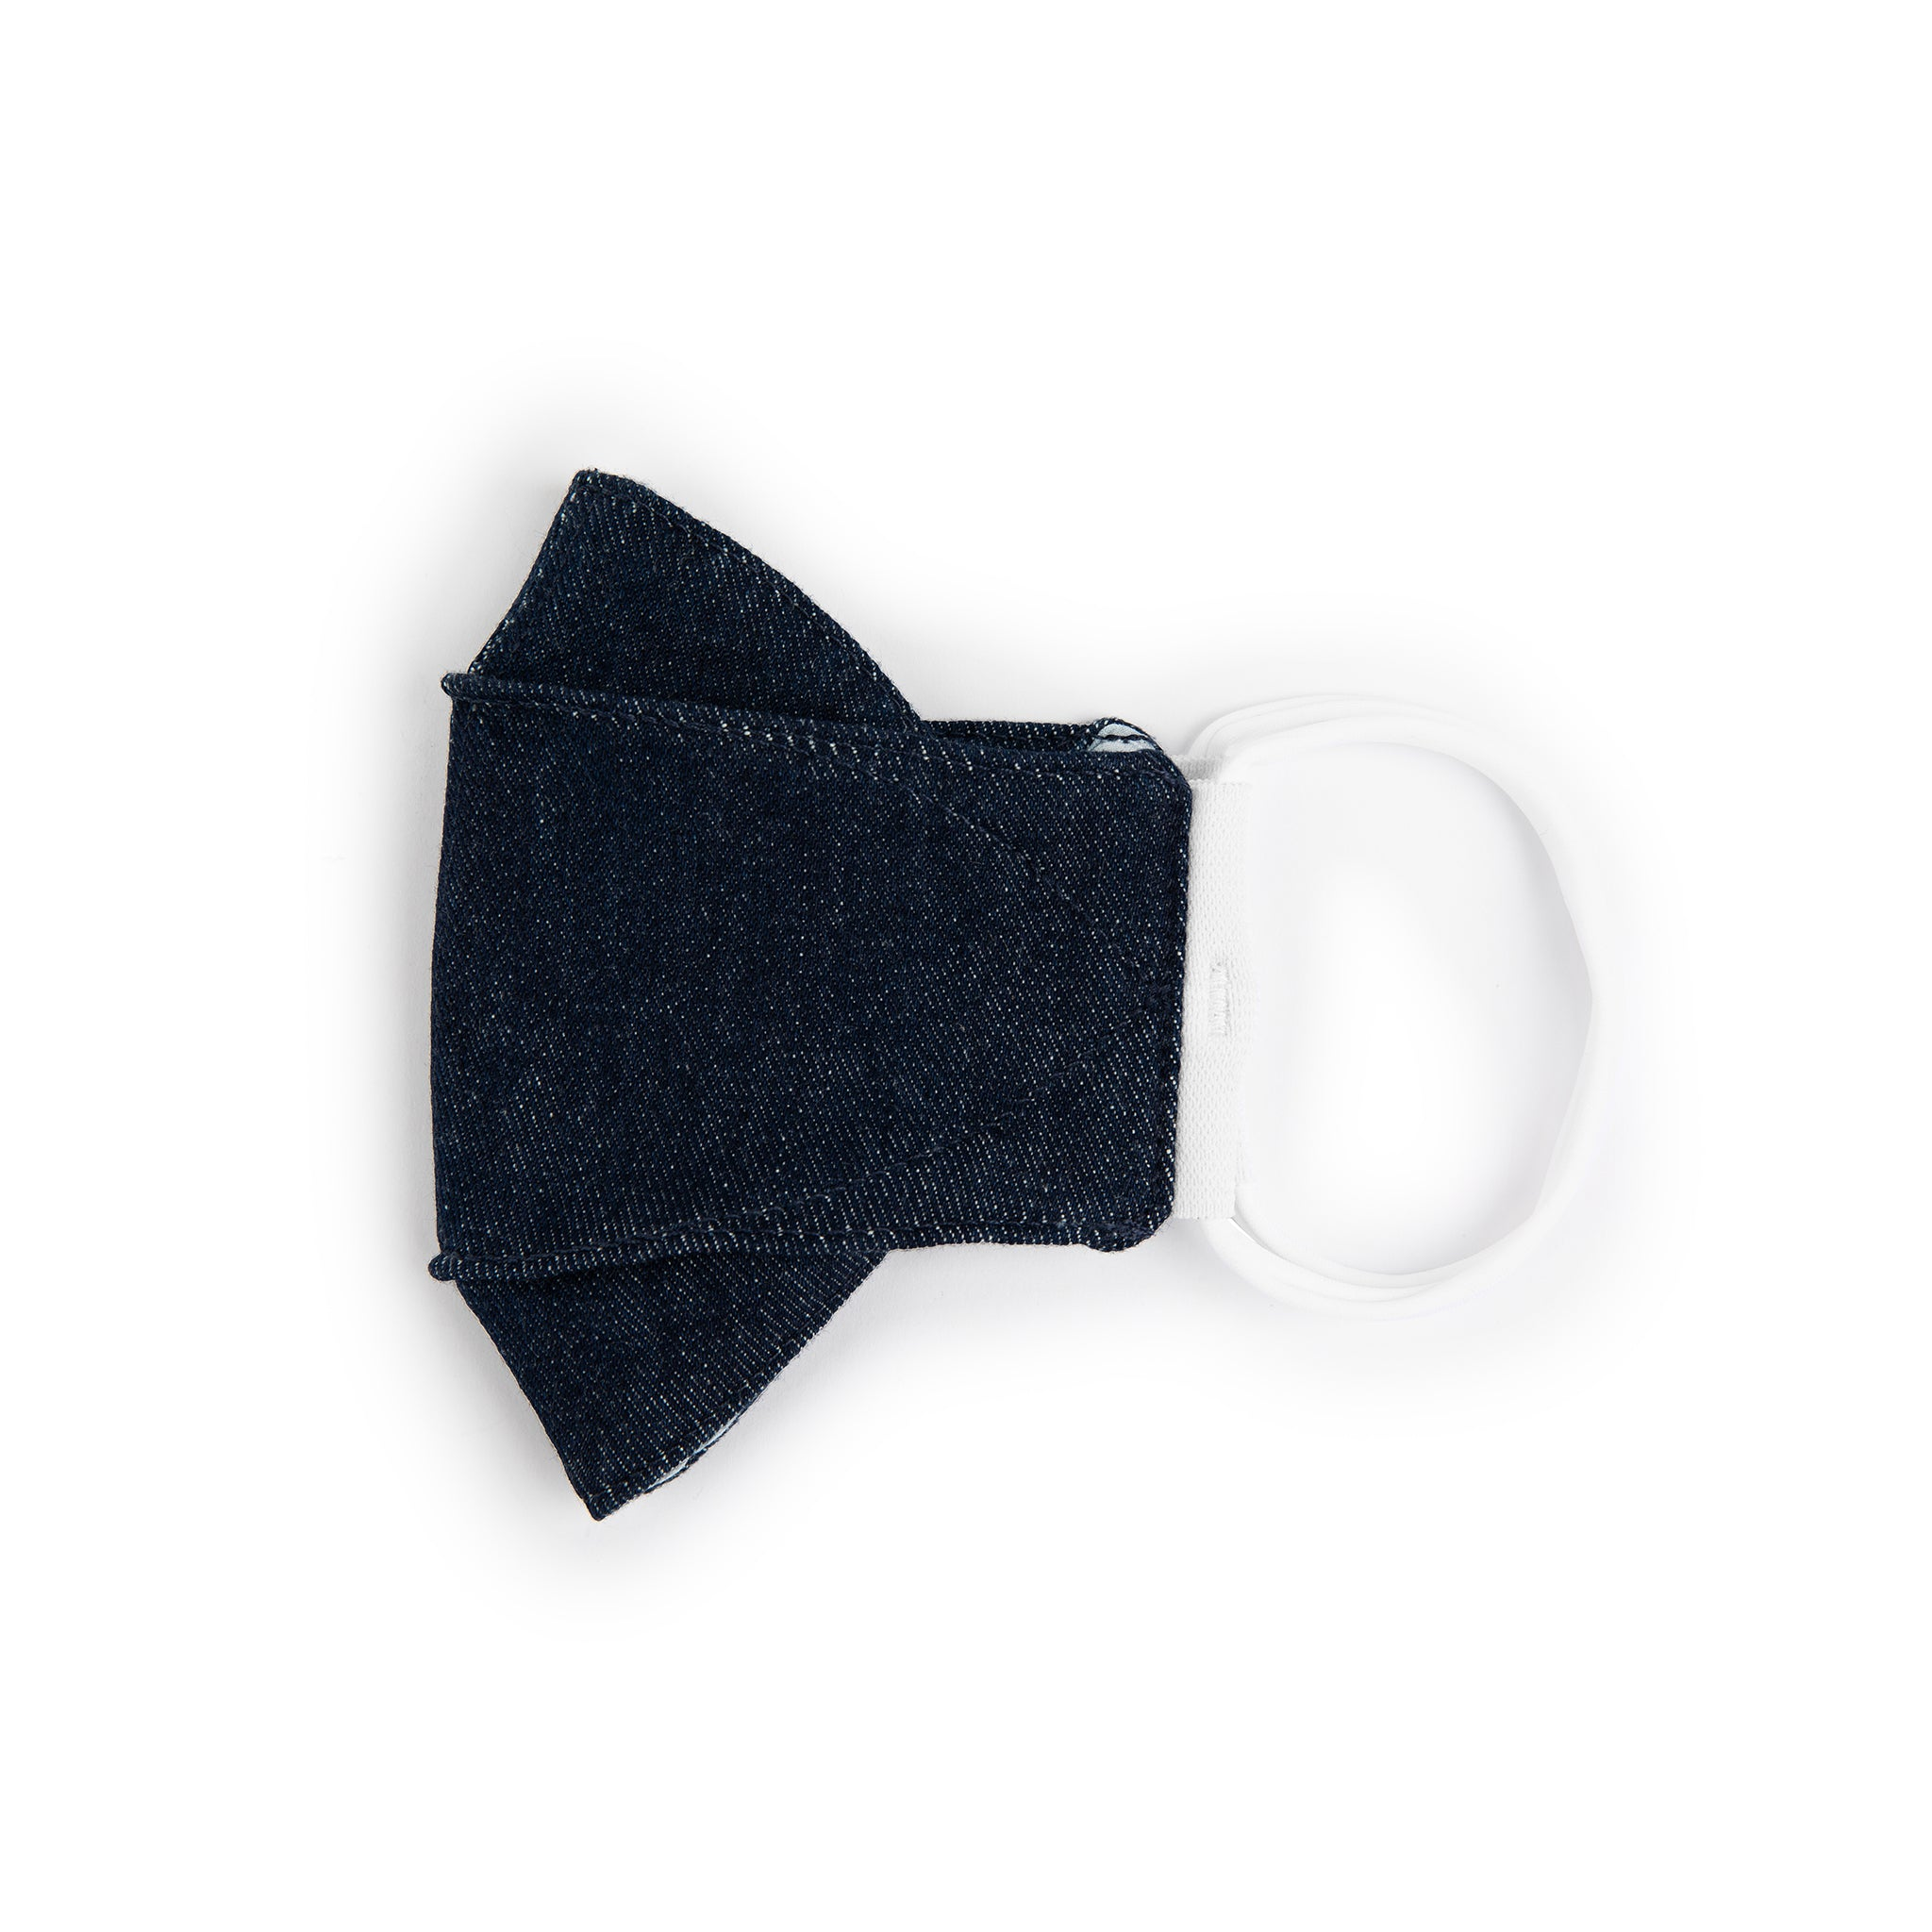 3D Origami Denim Face Mask — Medium